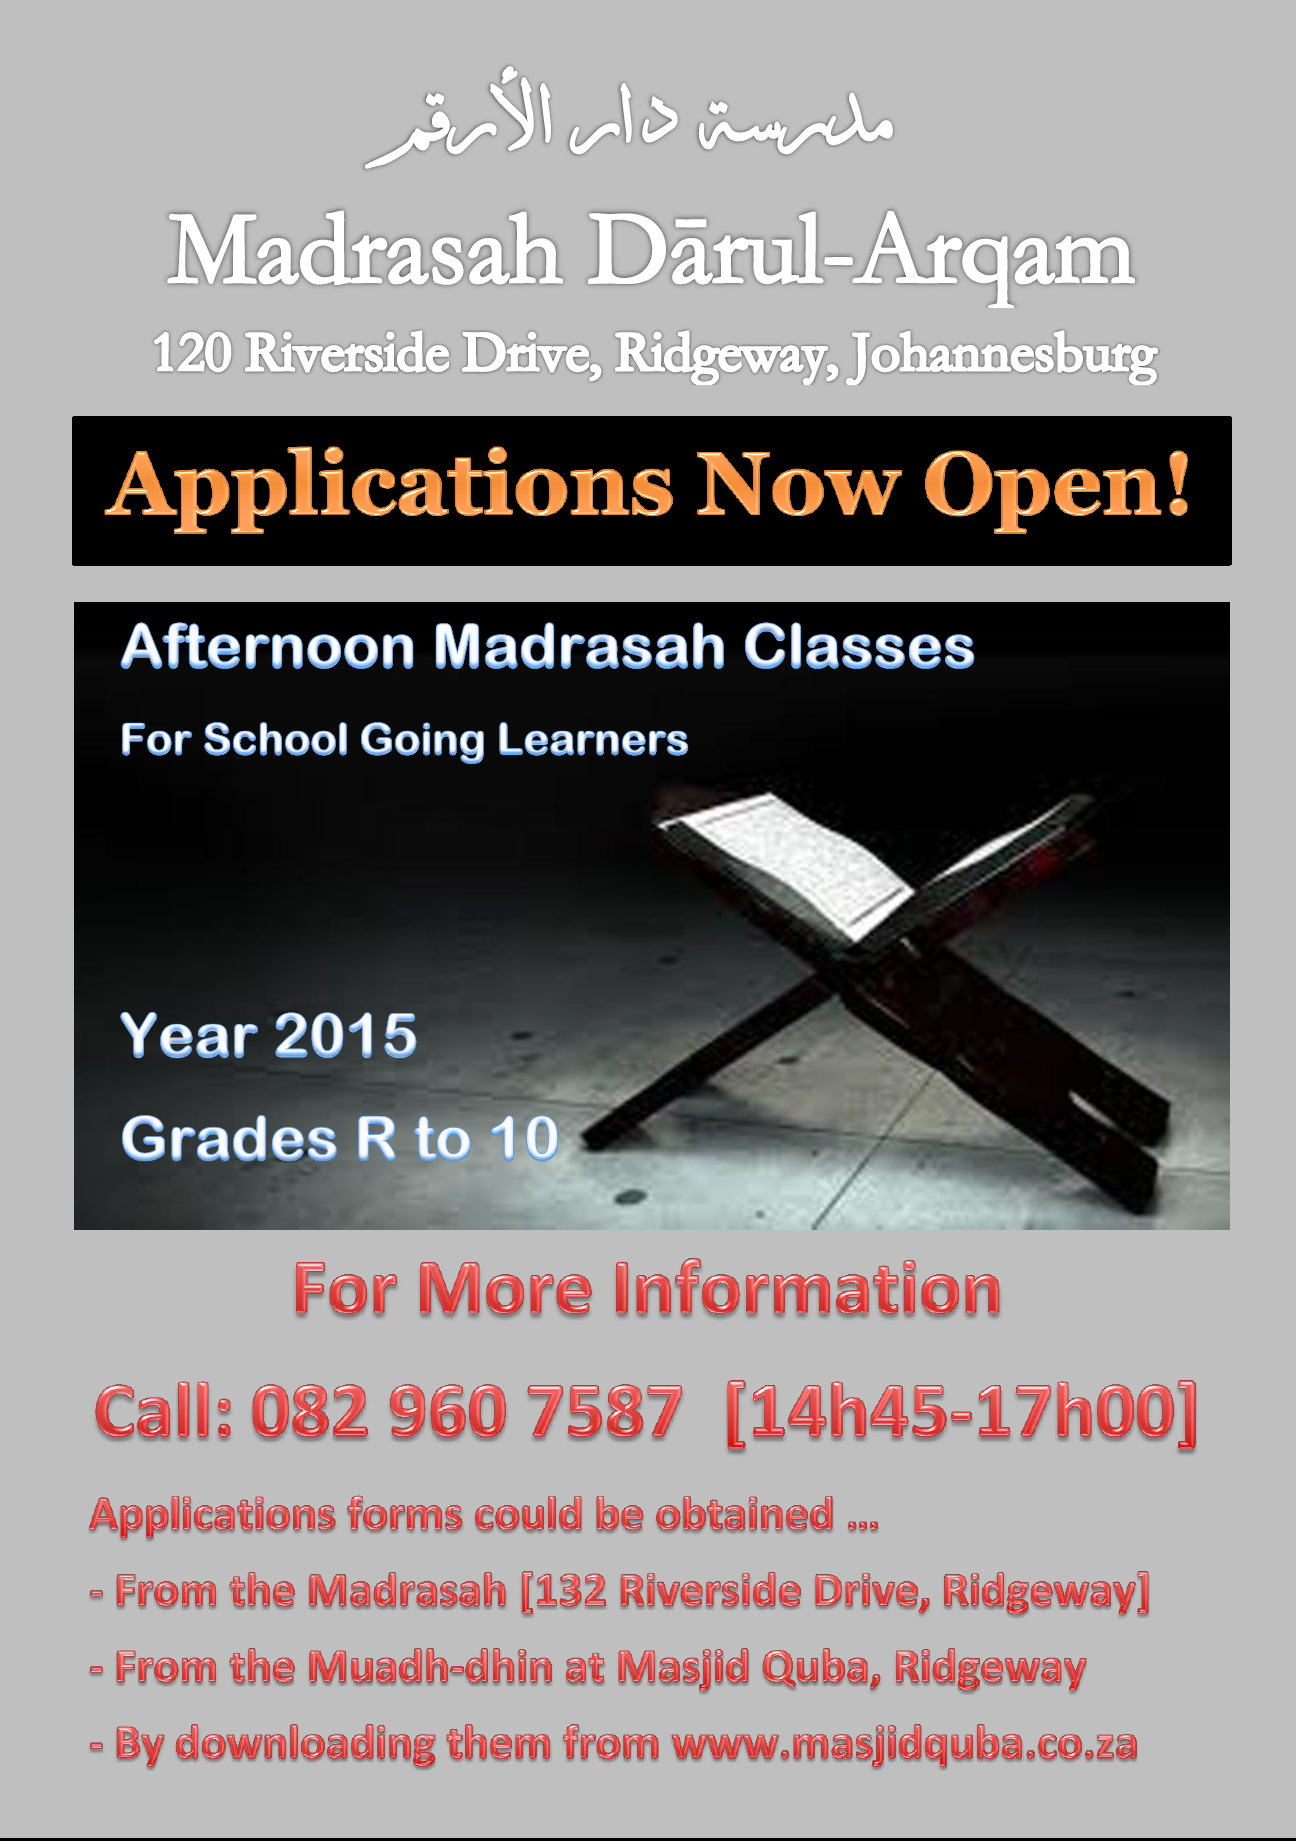 madrasah darul arqam applications poster 2015